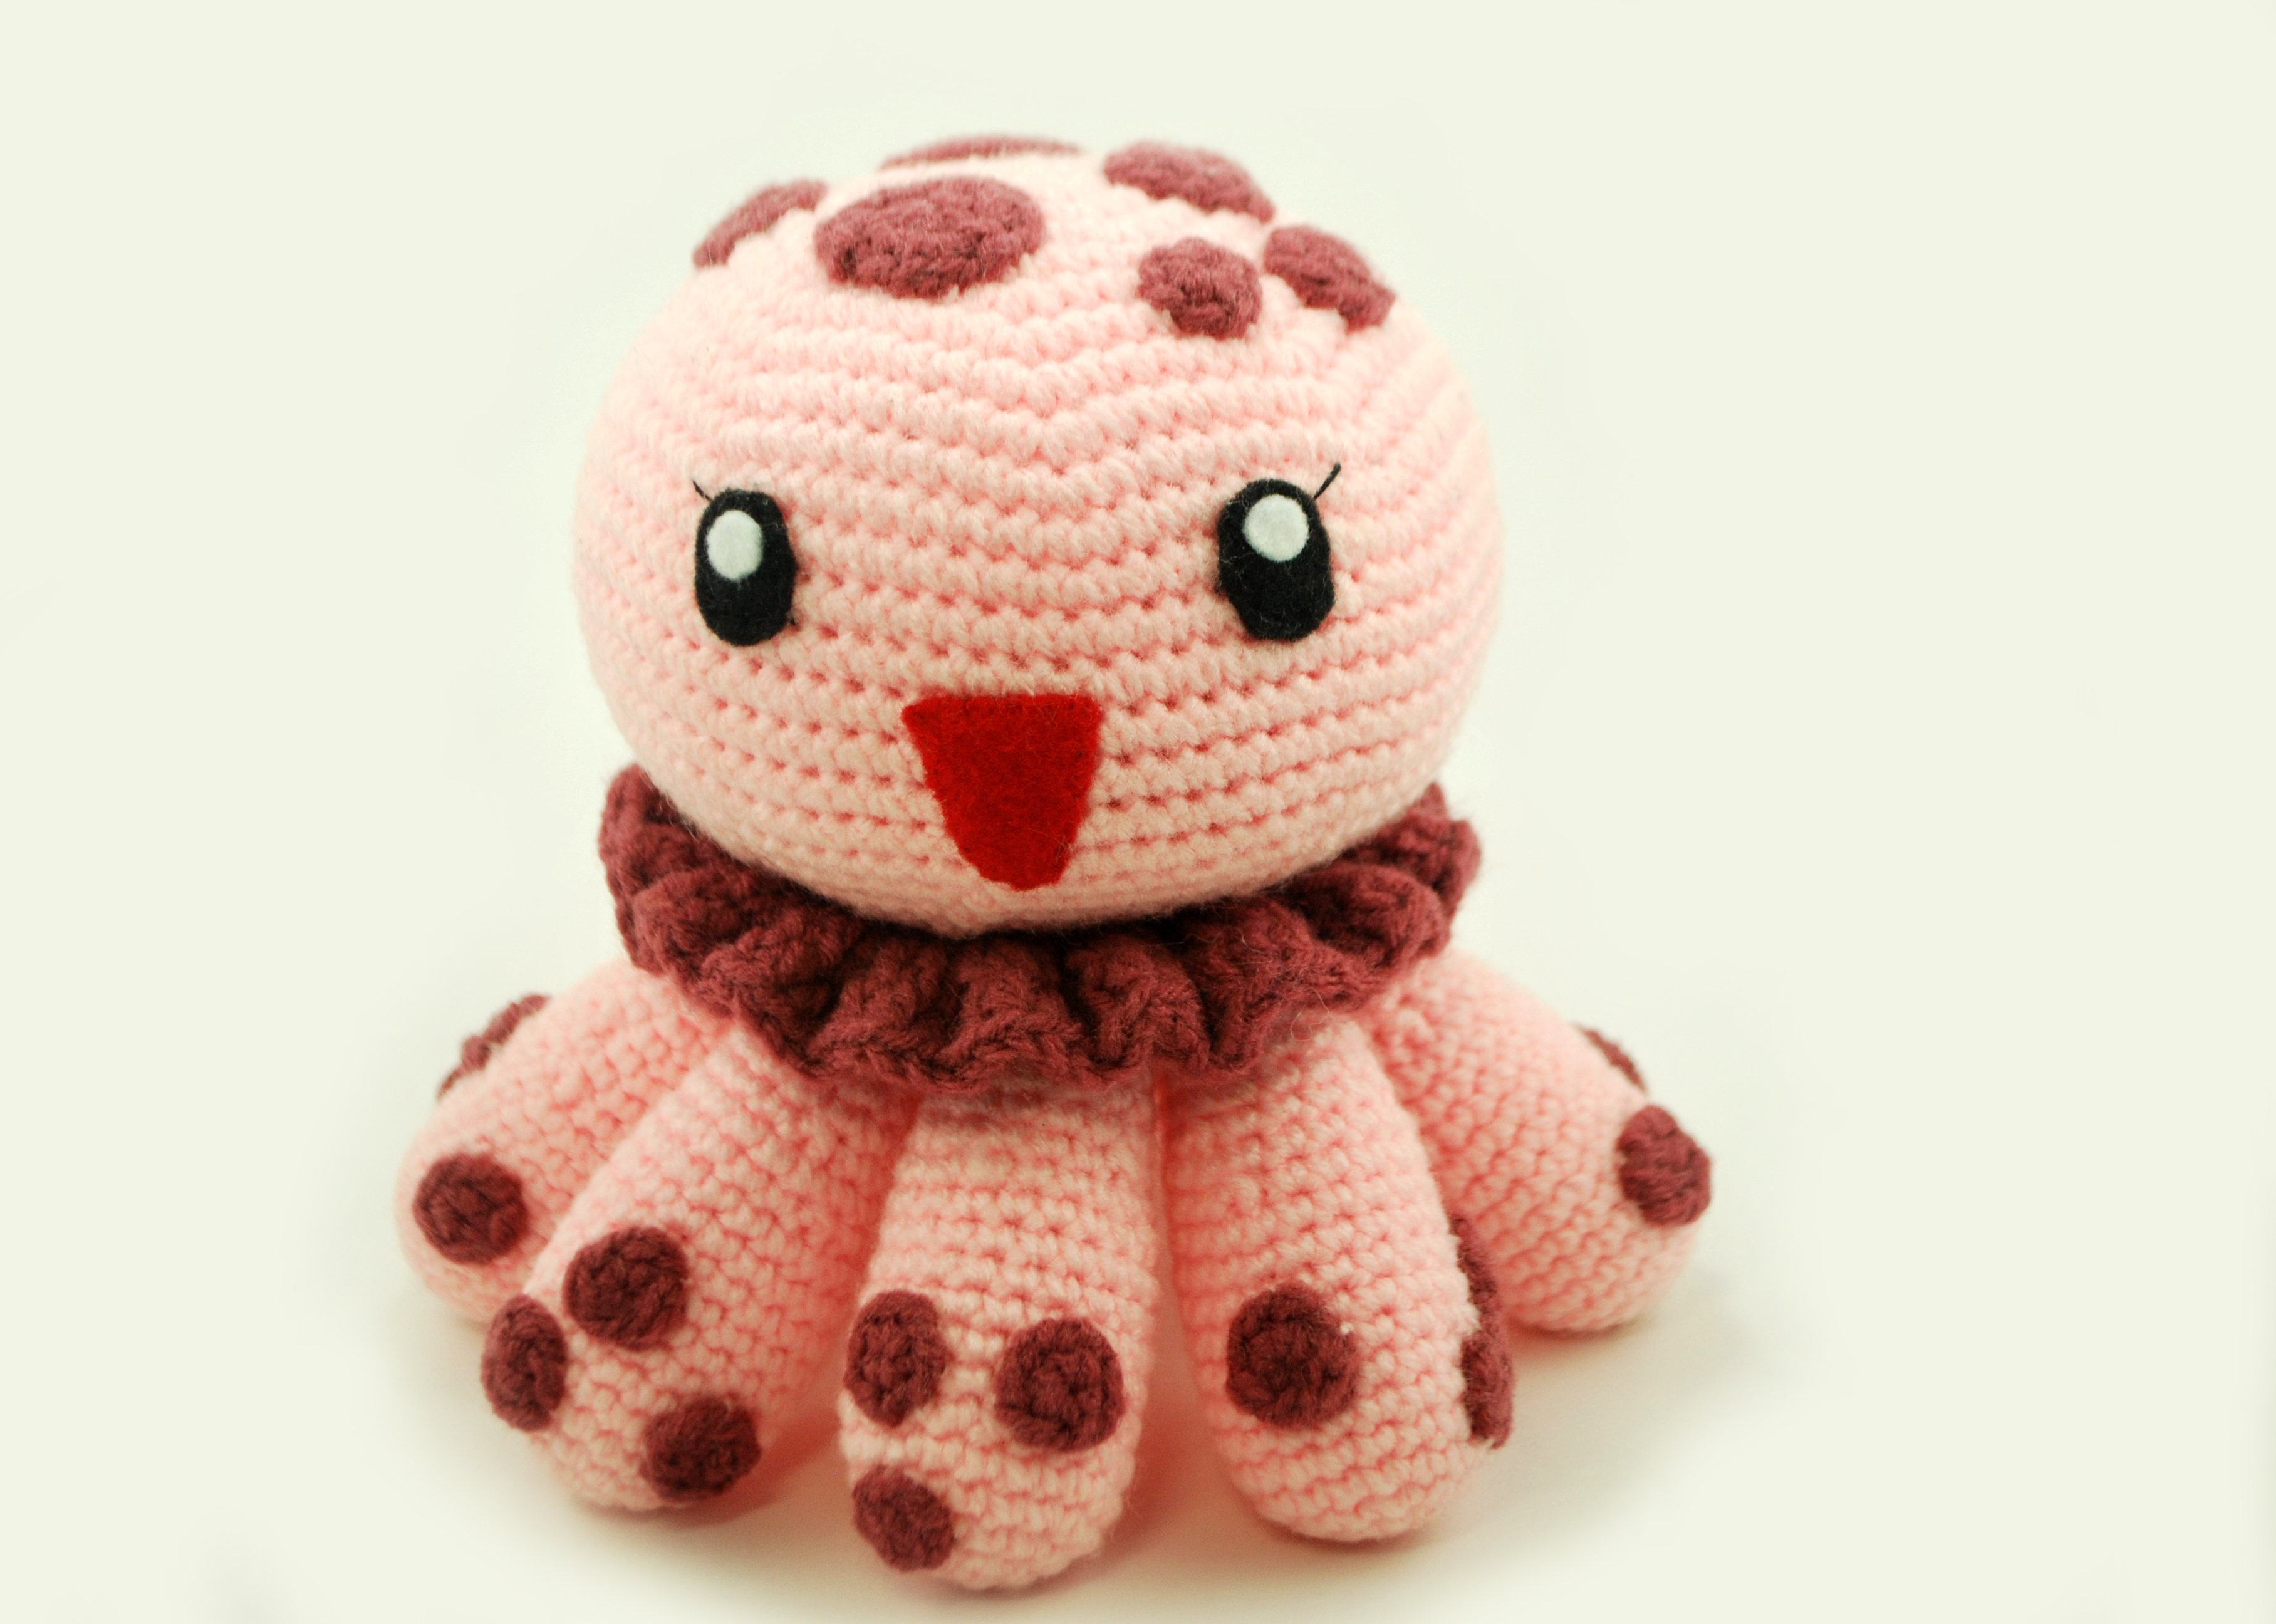 Clara the Spotted Jellyfish